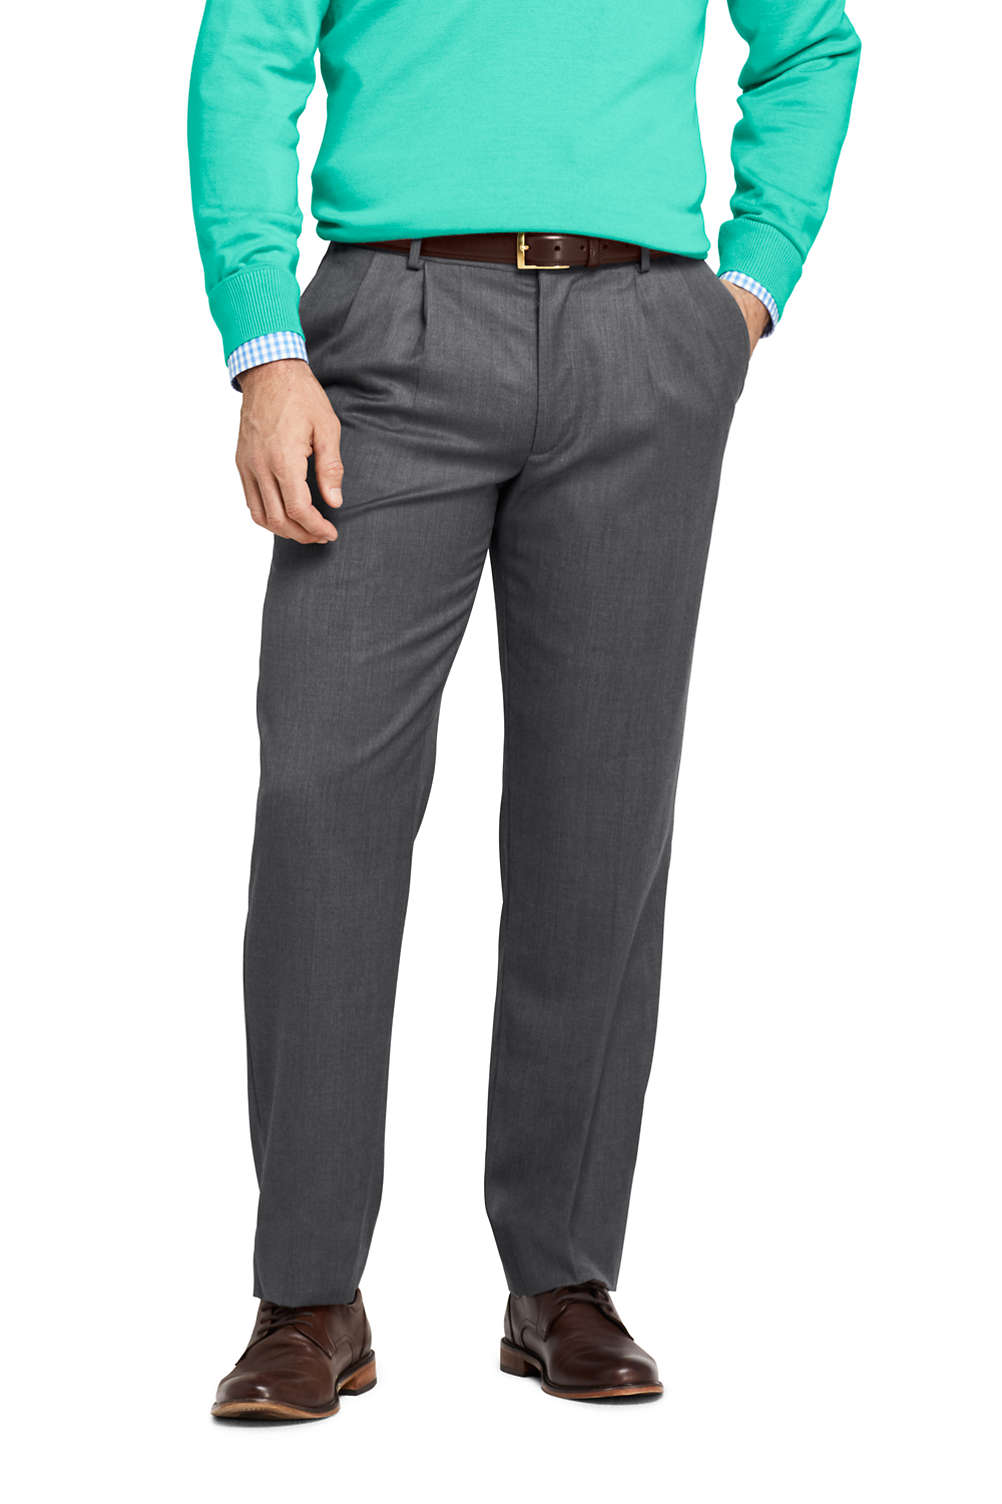 Men S Traditional Fit Pleat Wool Gabardine Trousers From Lands End